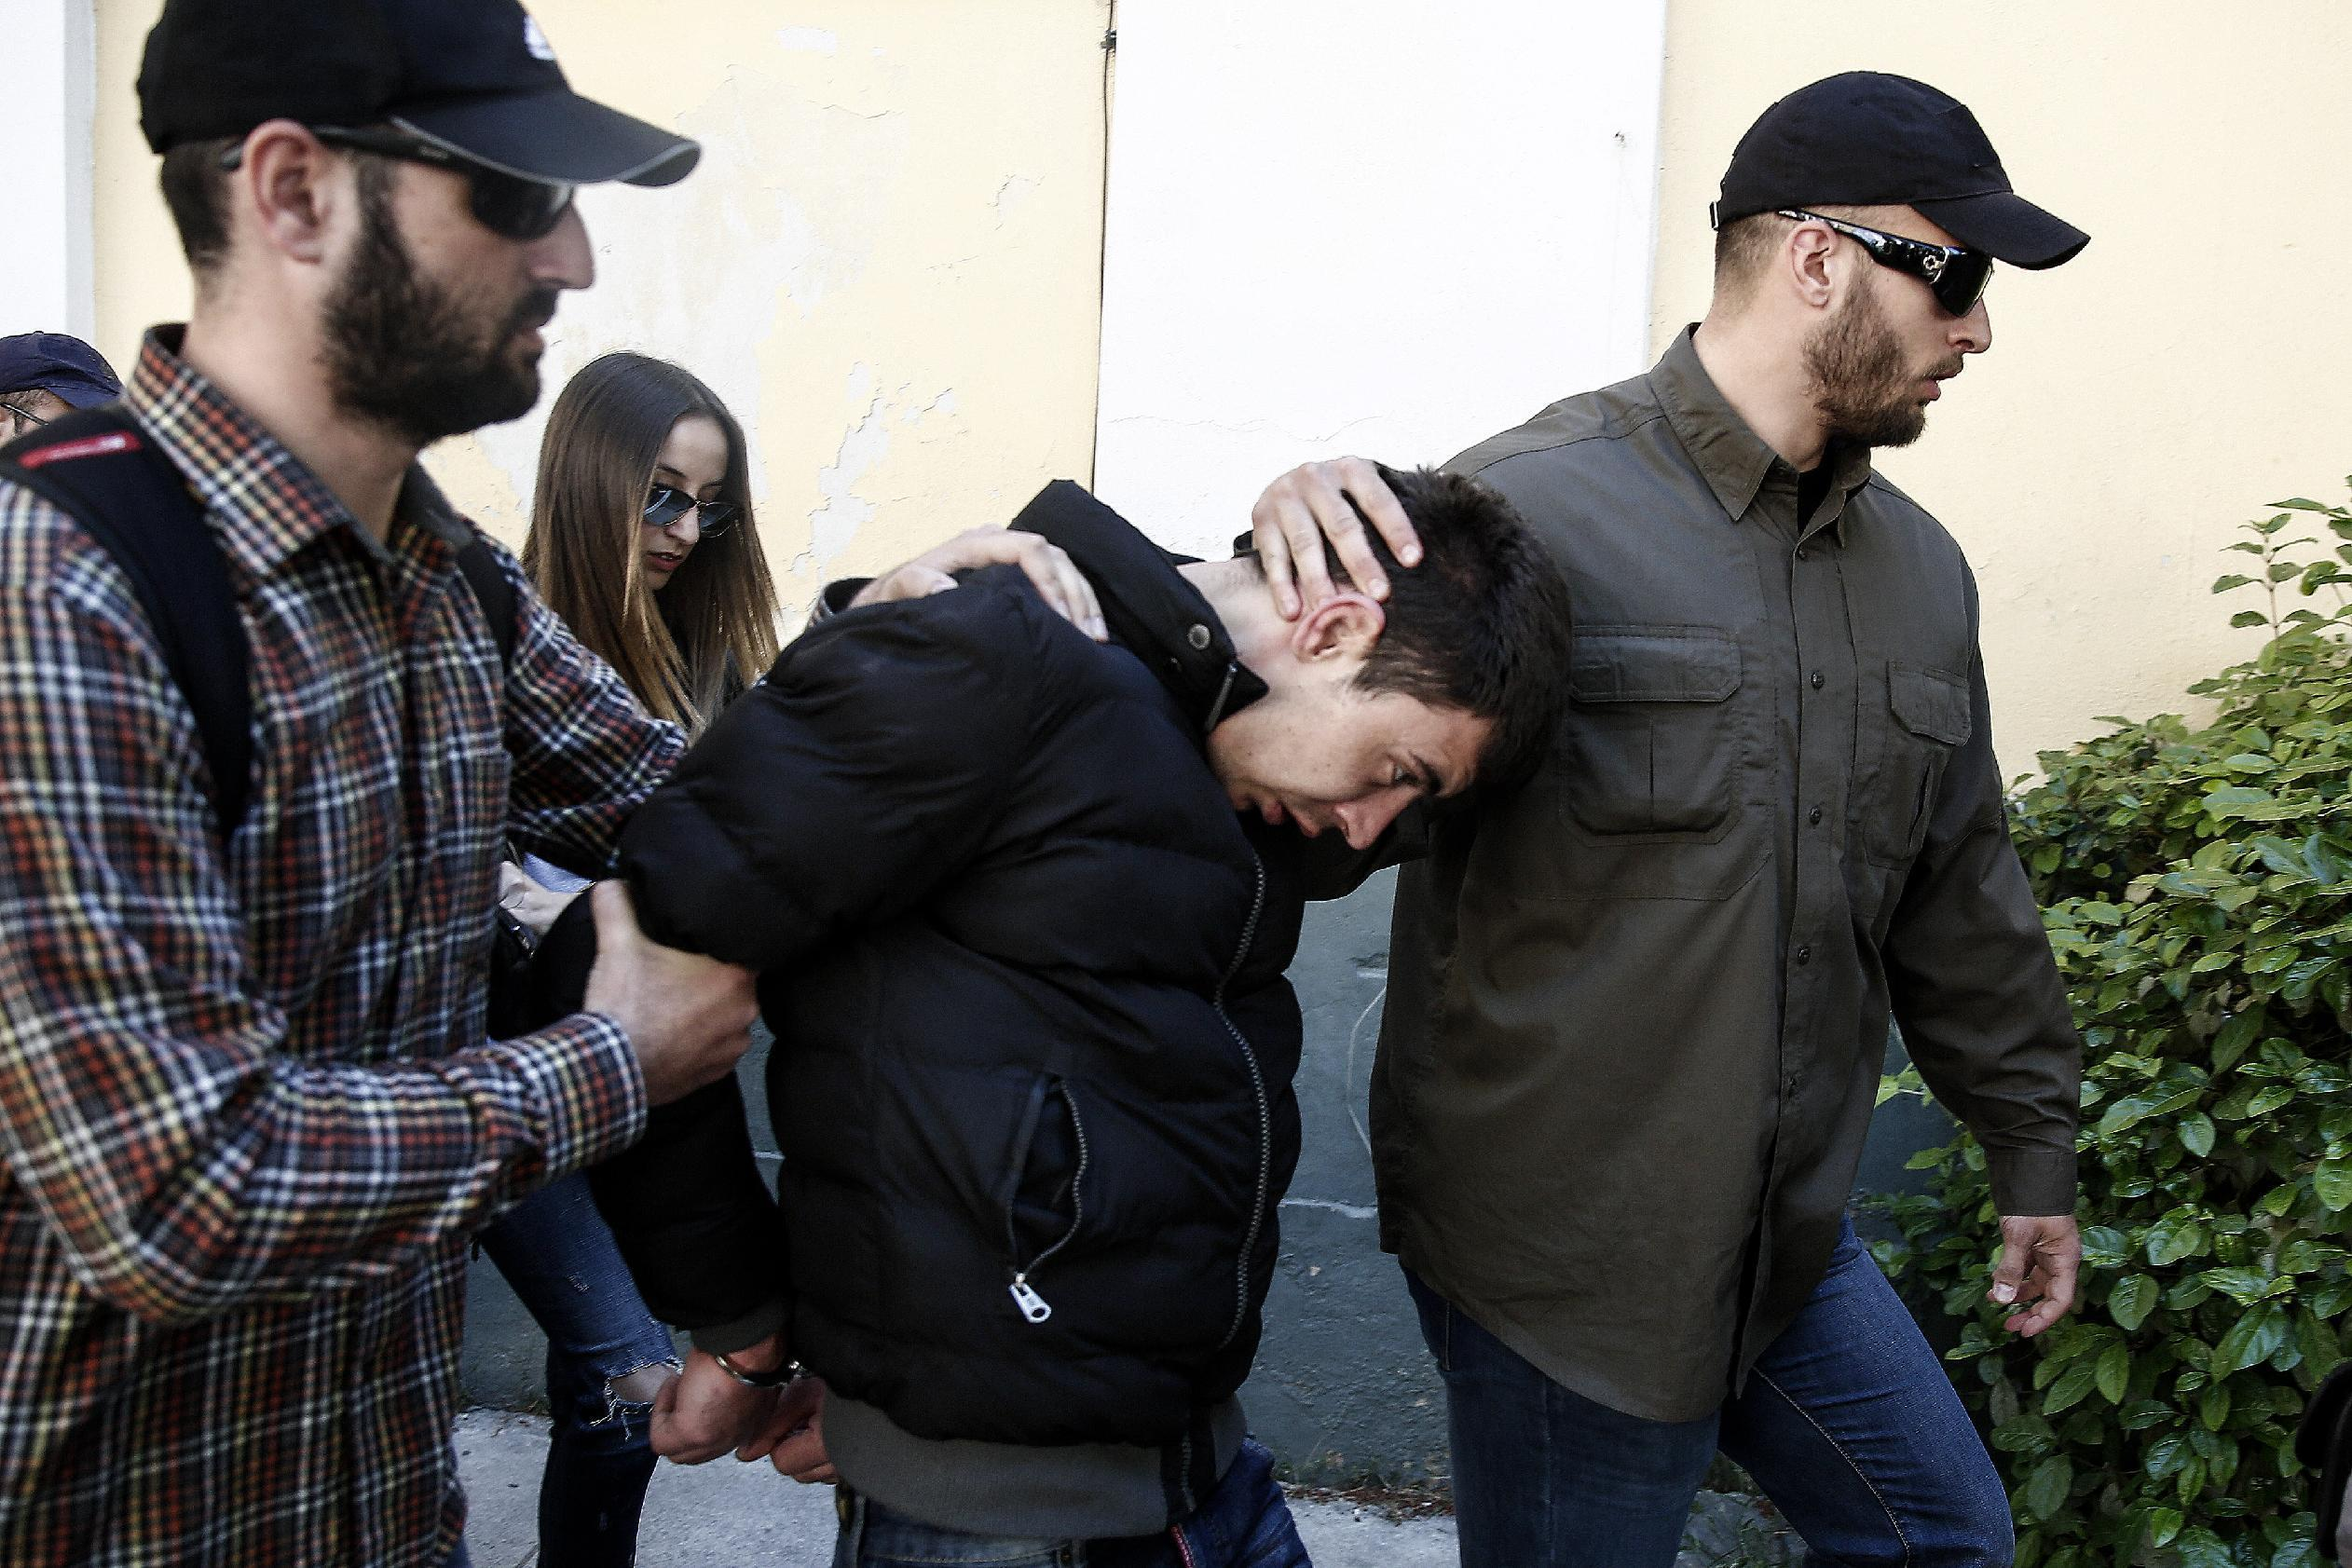 Greek police: body of murdered 4-year-old can never be found